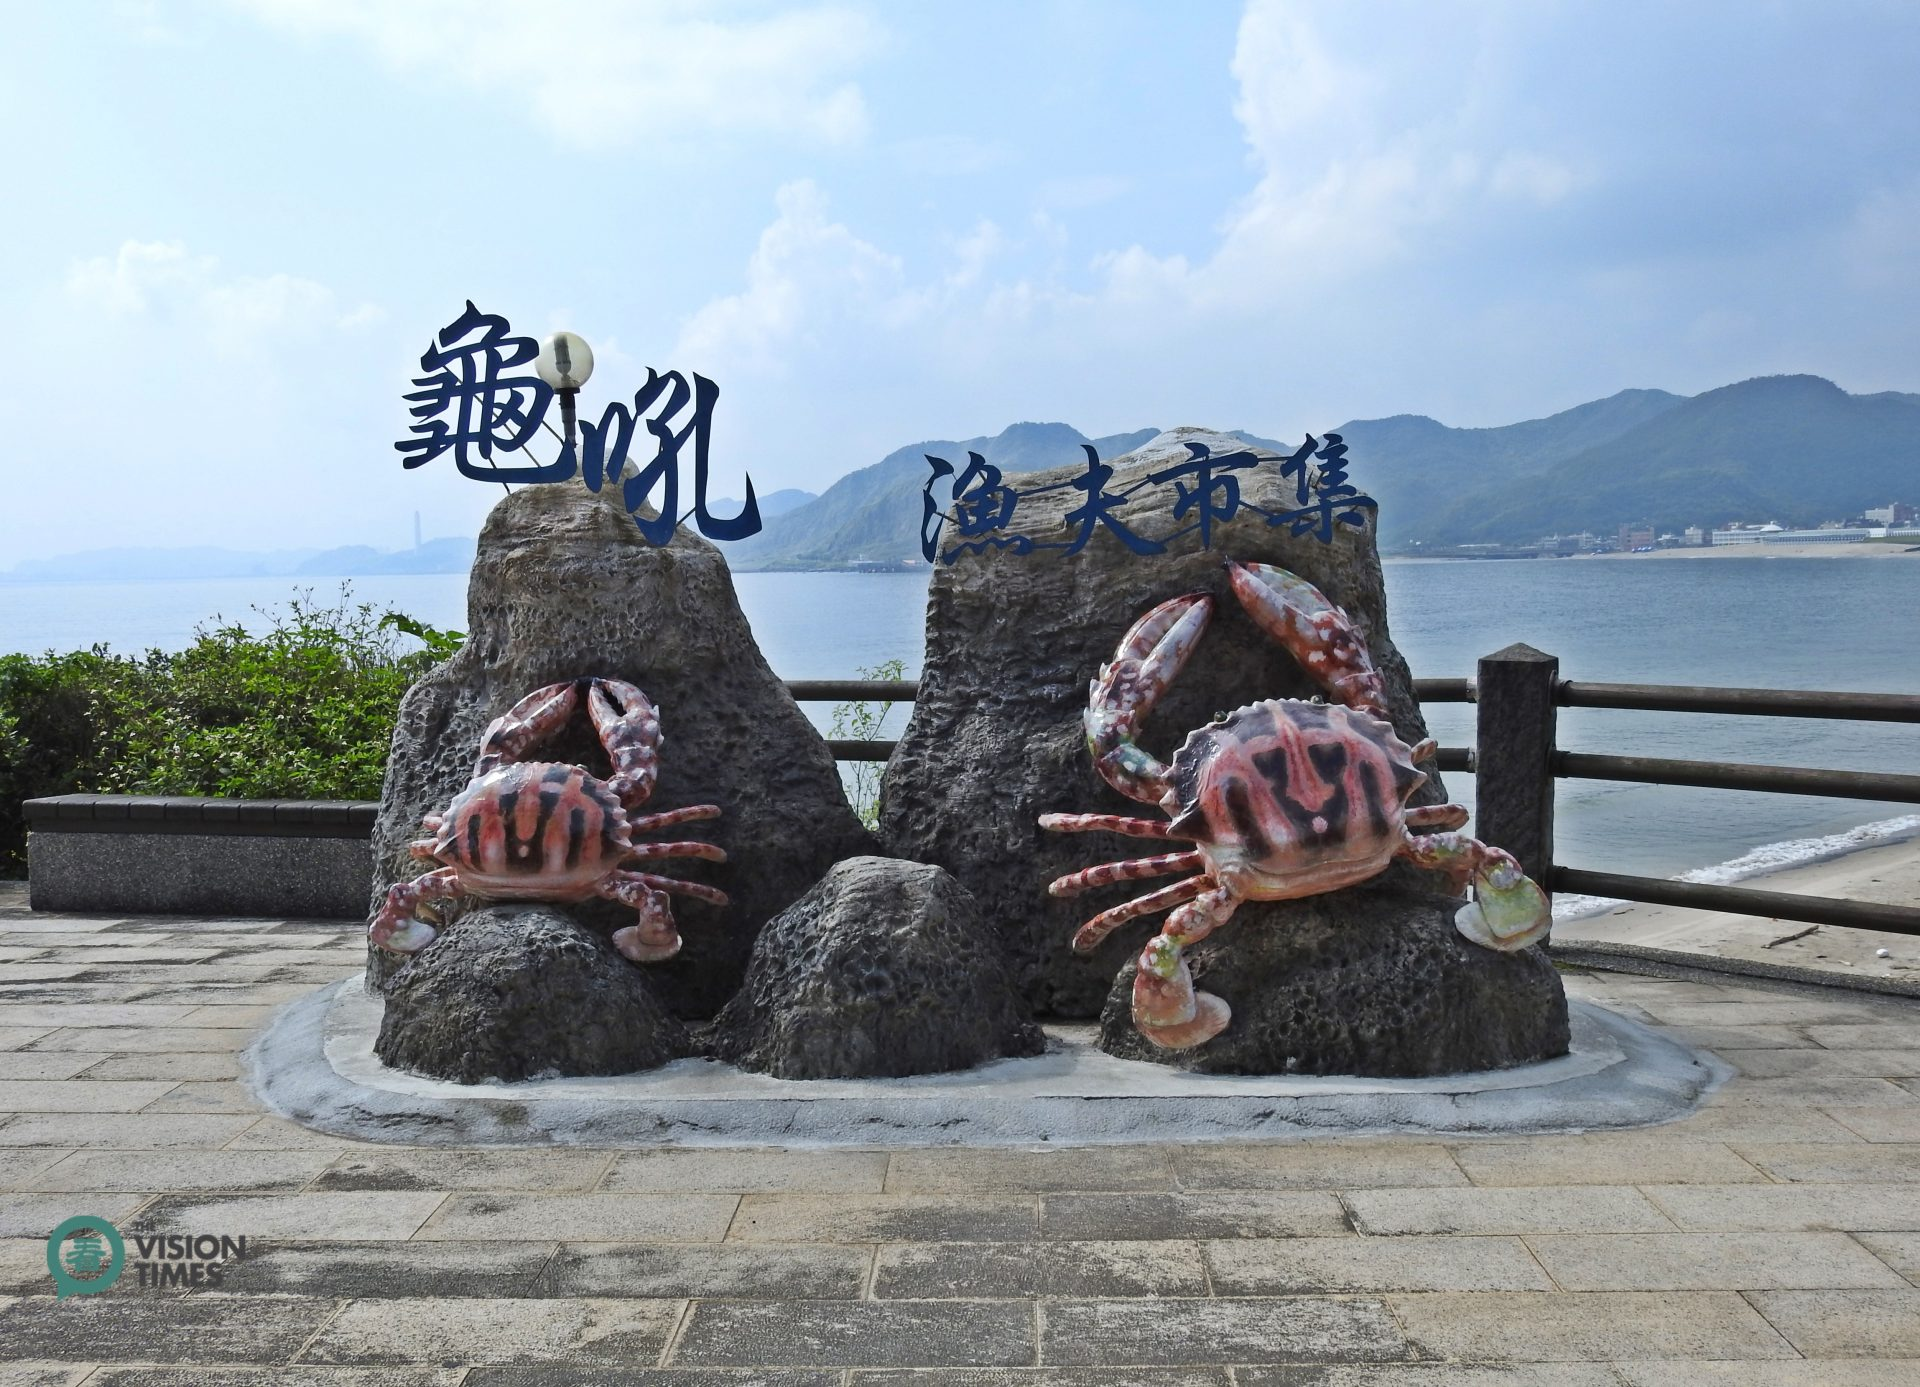 The Wanli Crab Theme Park and the Guihou Fishermen Market are close to each other. (Image: Billy Shyu / Vision Times)